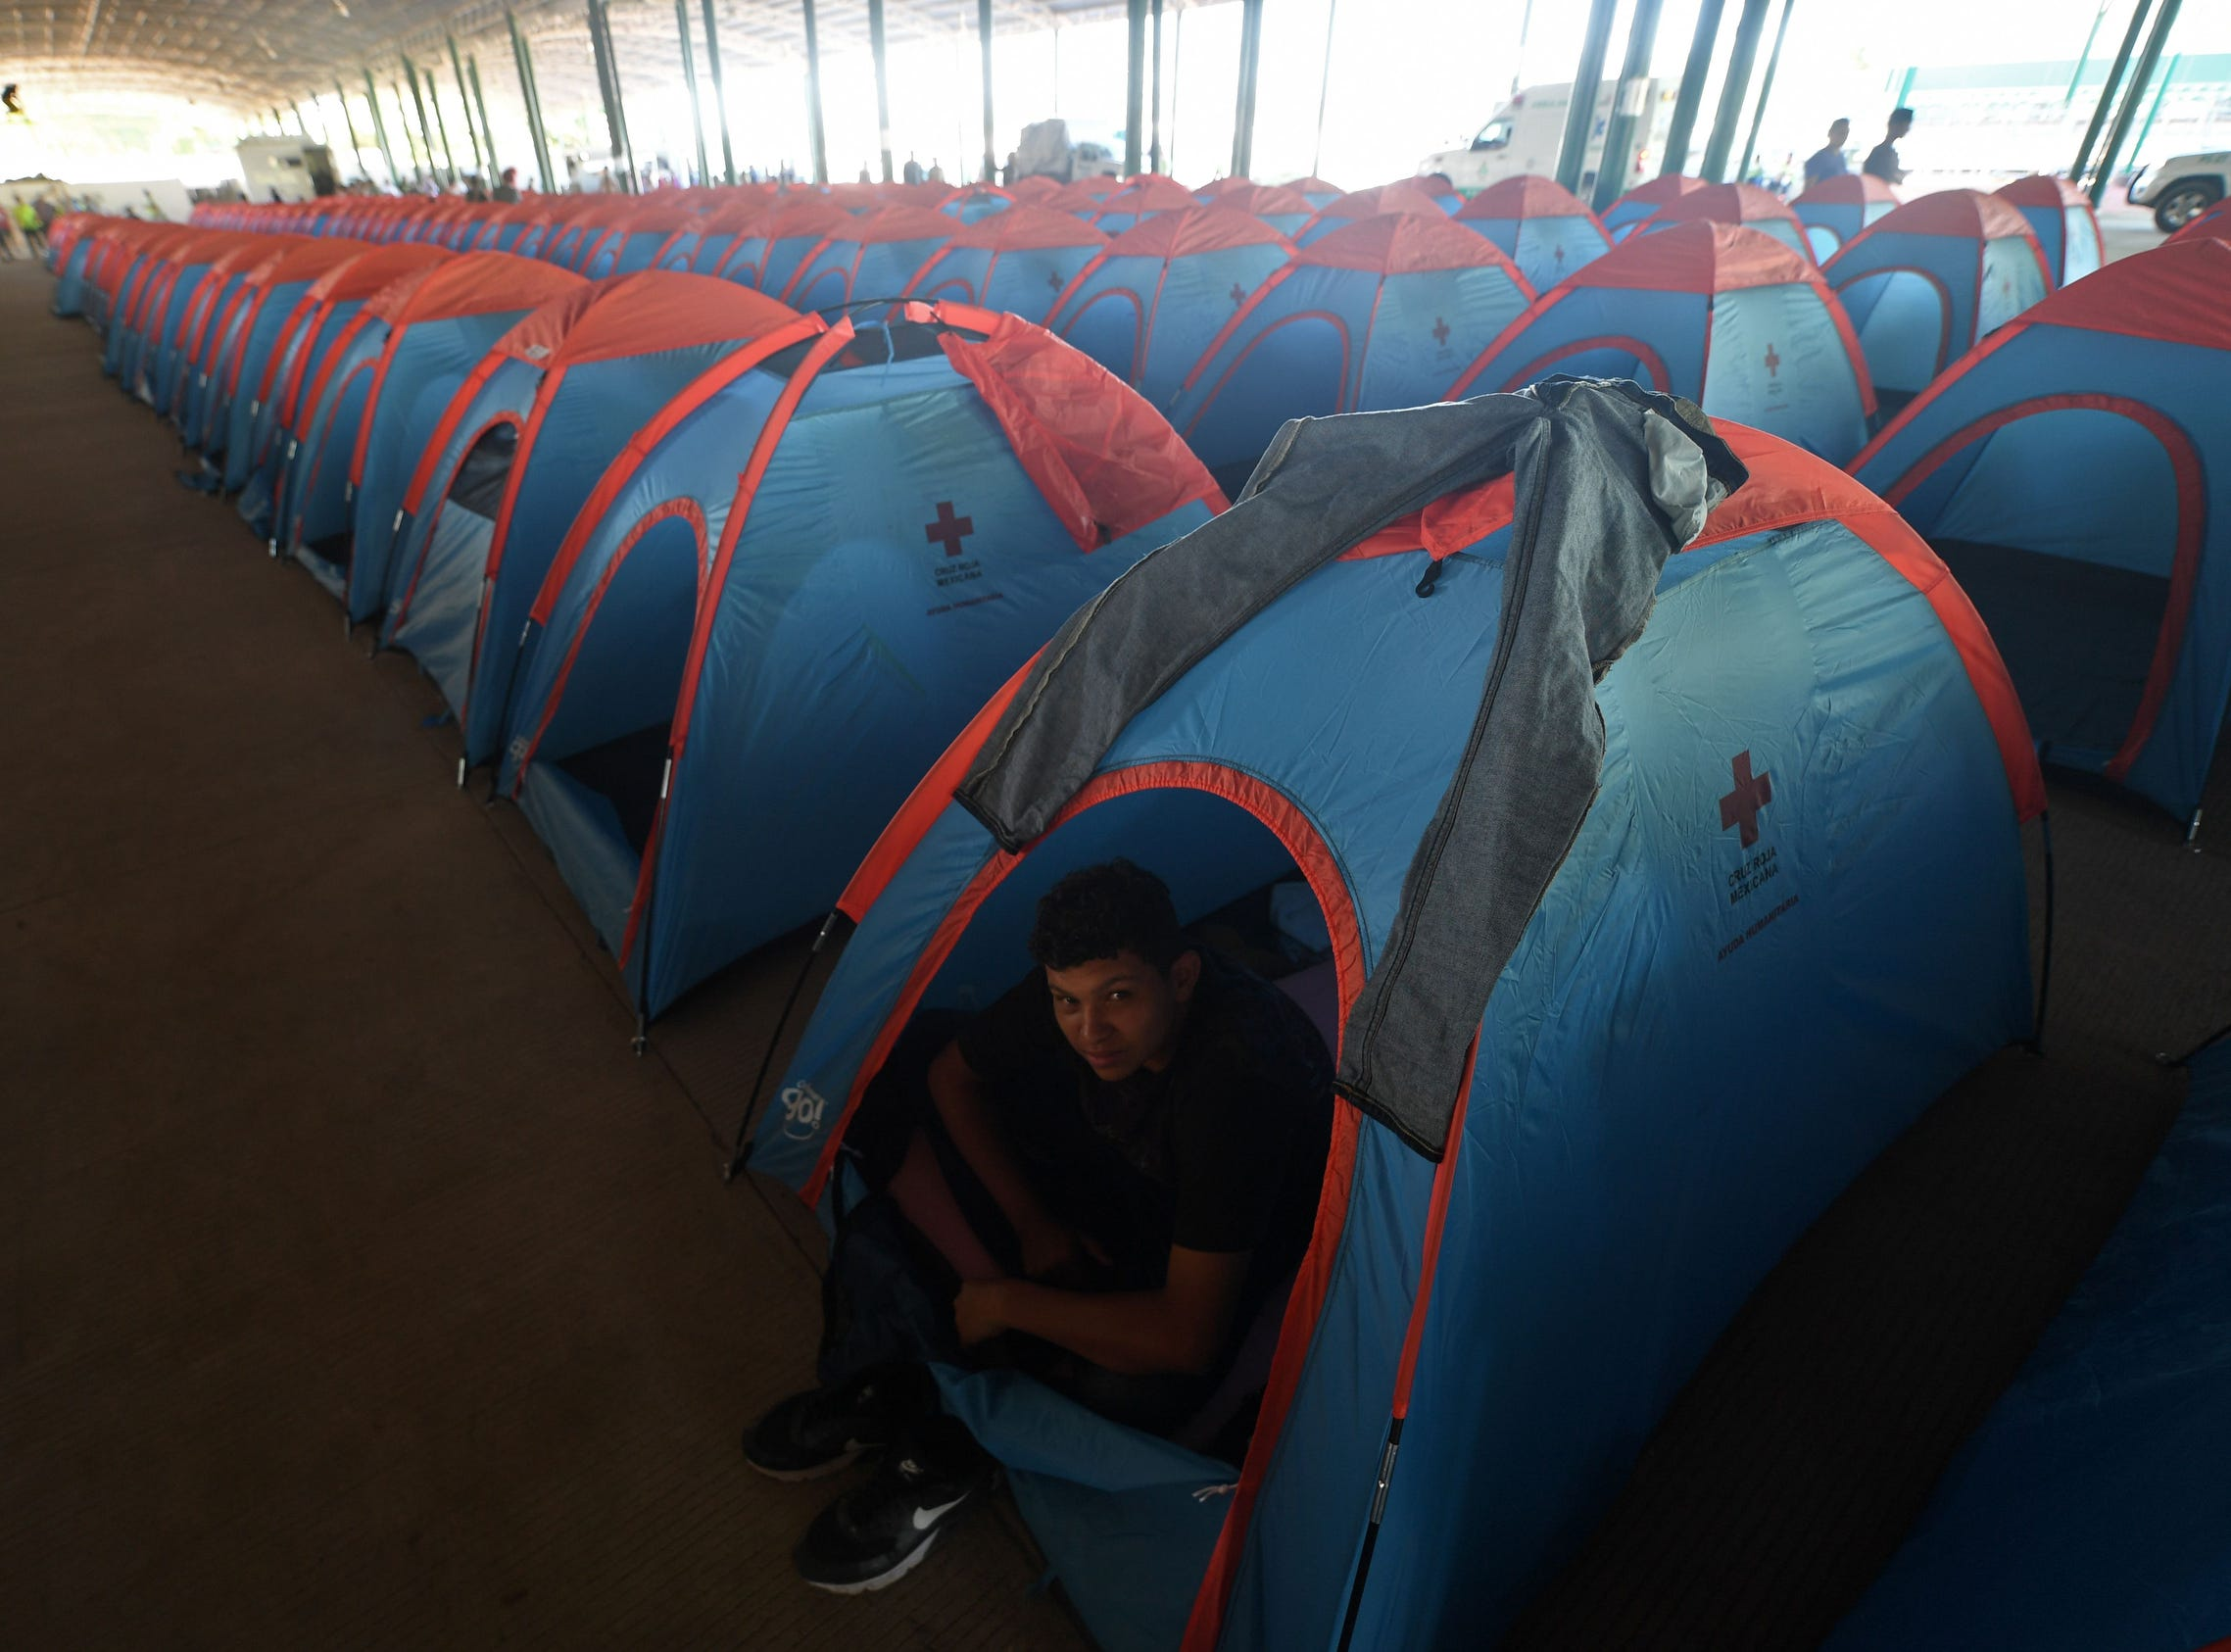 A mirant rests in a tent at the International Mesoamerican Fair's venue in Tapachula, Chiapas state, Mexico.